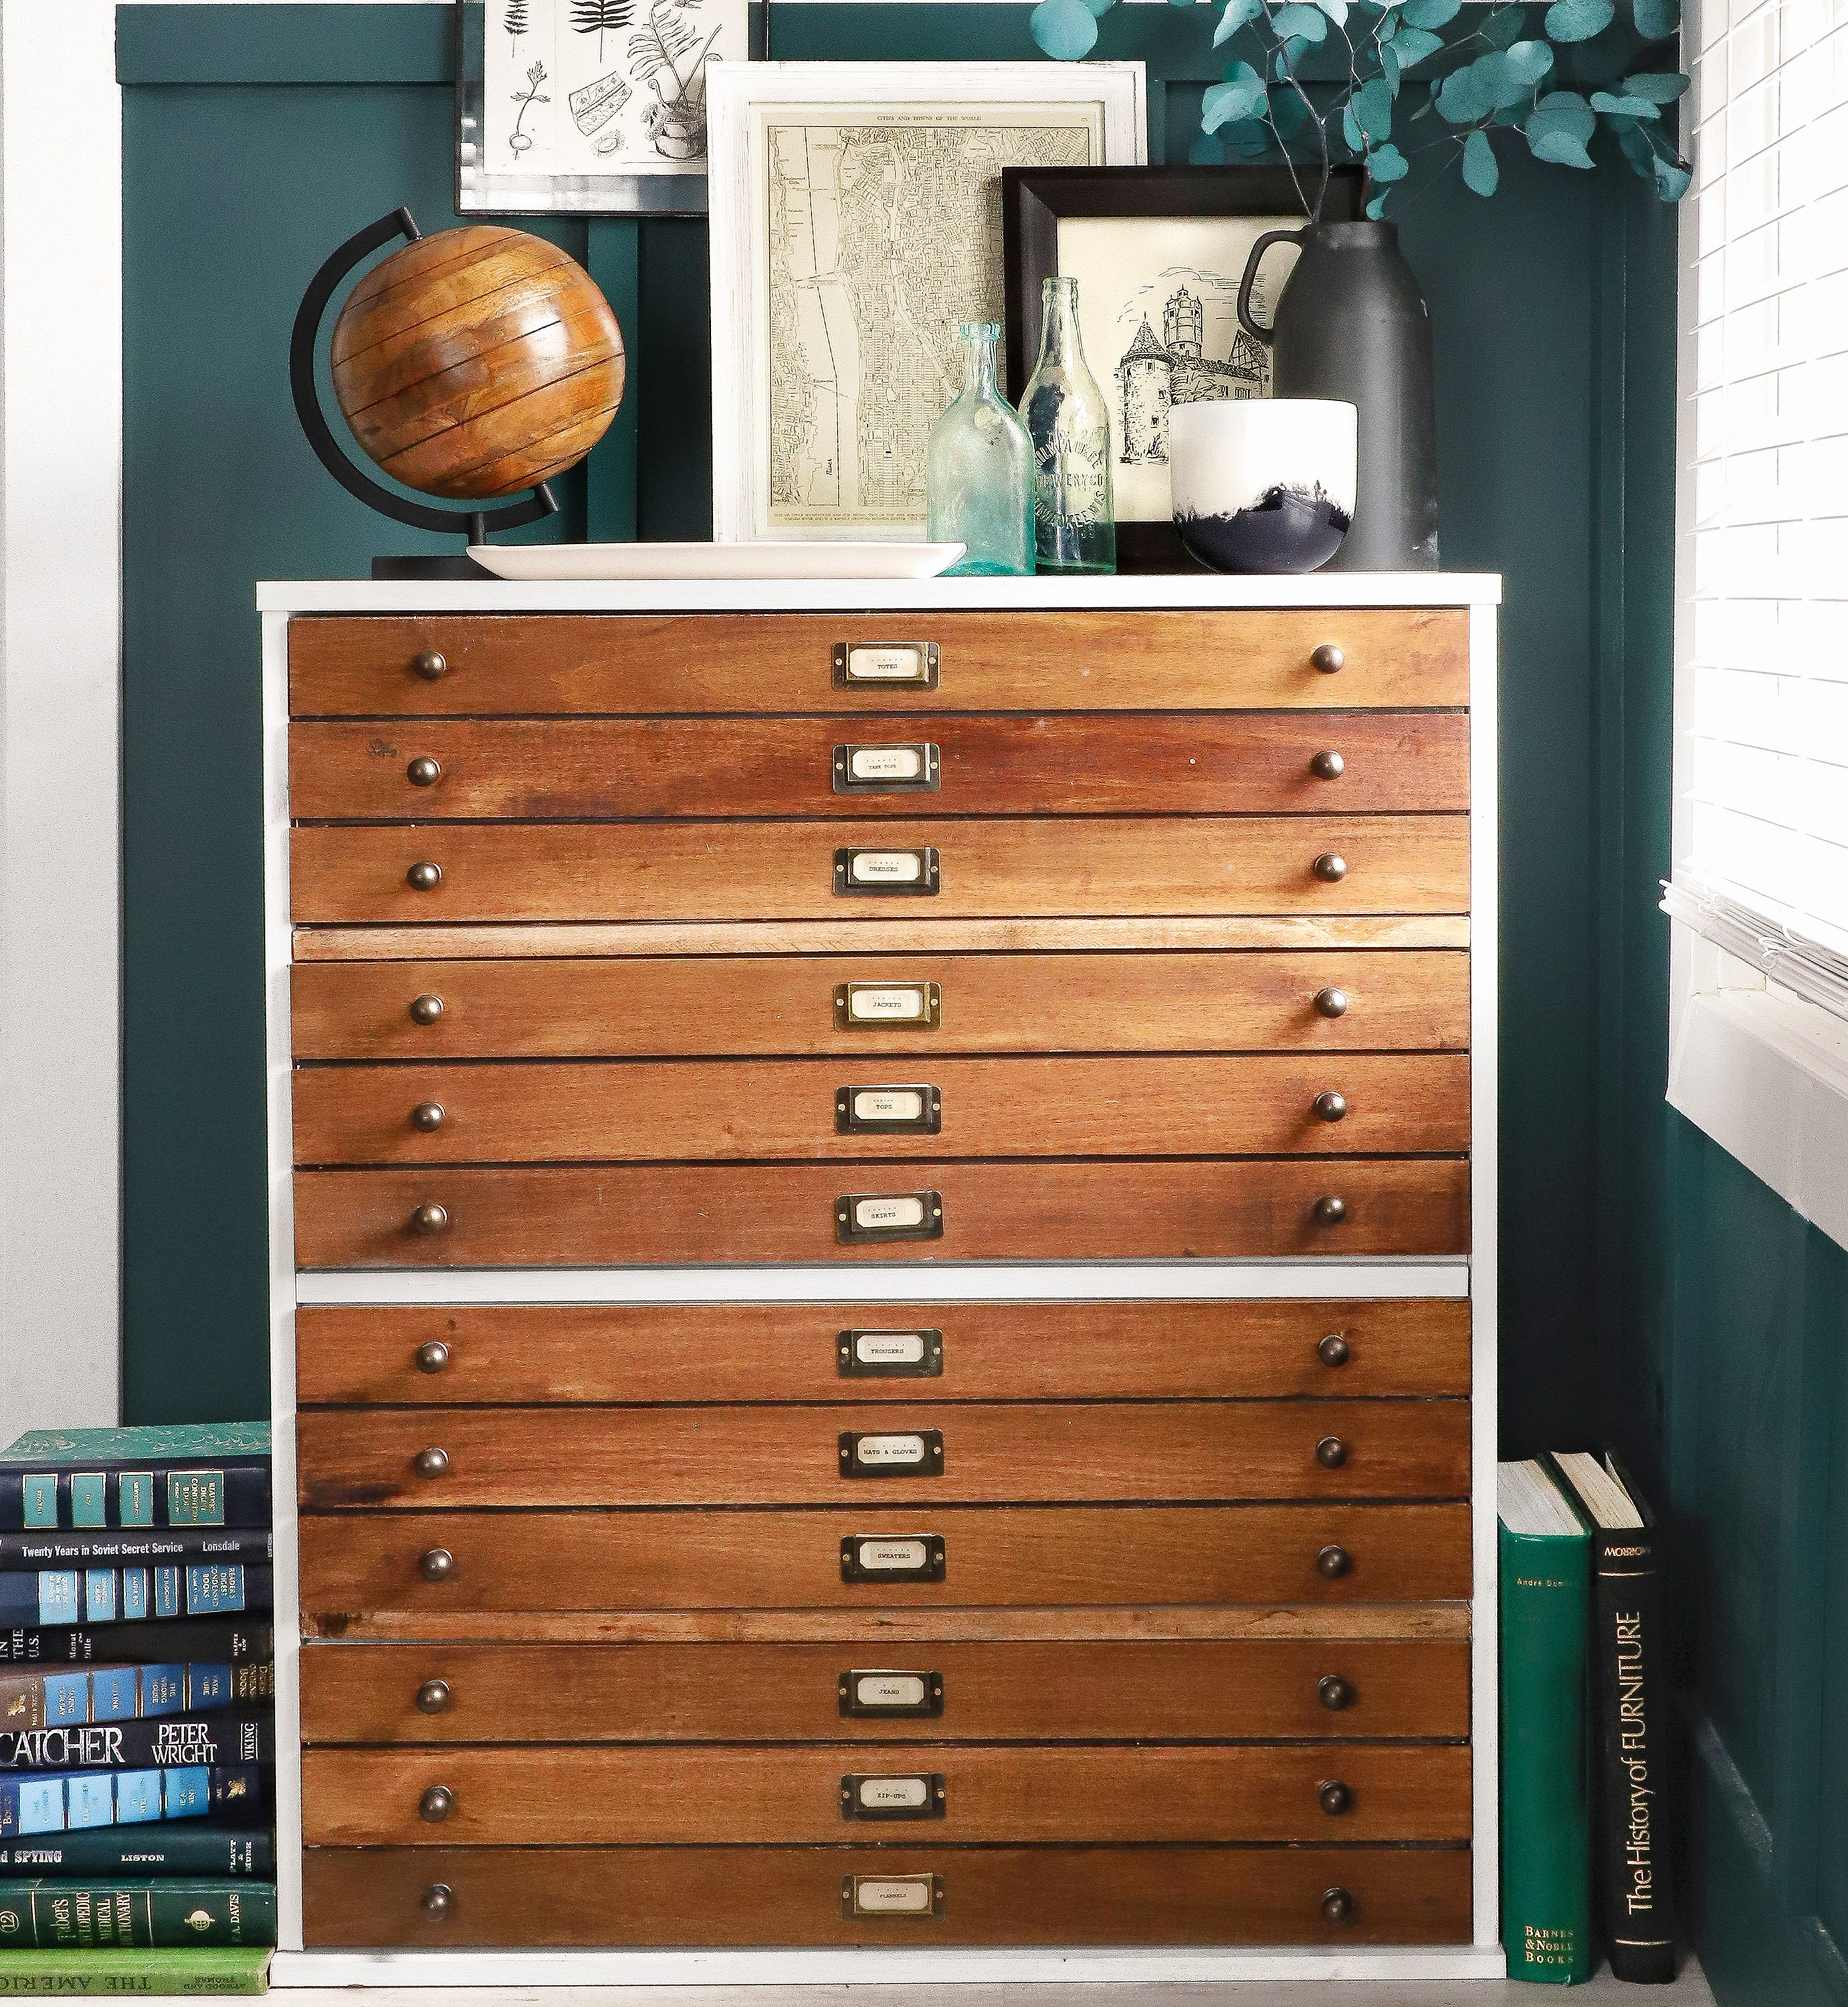 Before And After Diy Map Drawer Dresser This Old House In 2020 Map Drawers Refinishing Furniture Diy Diy Drawers